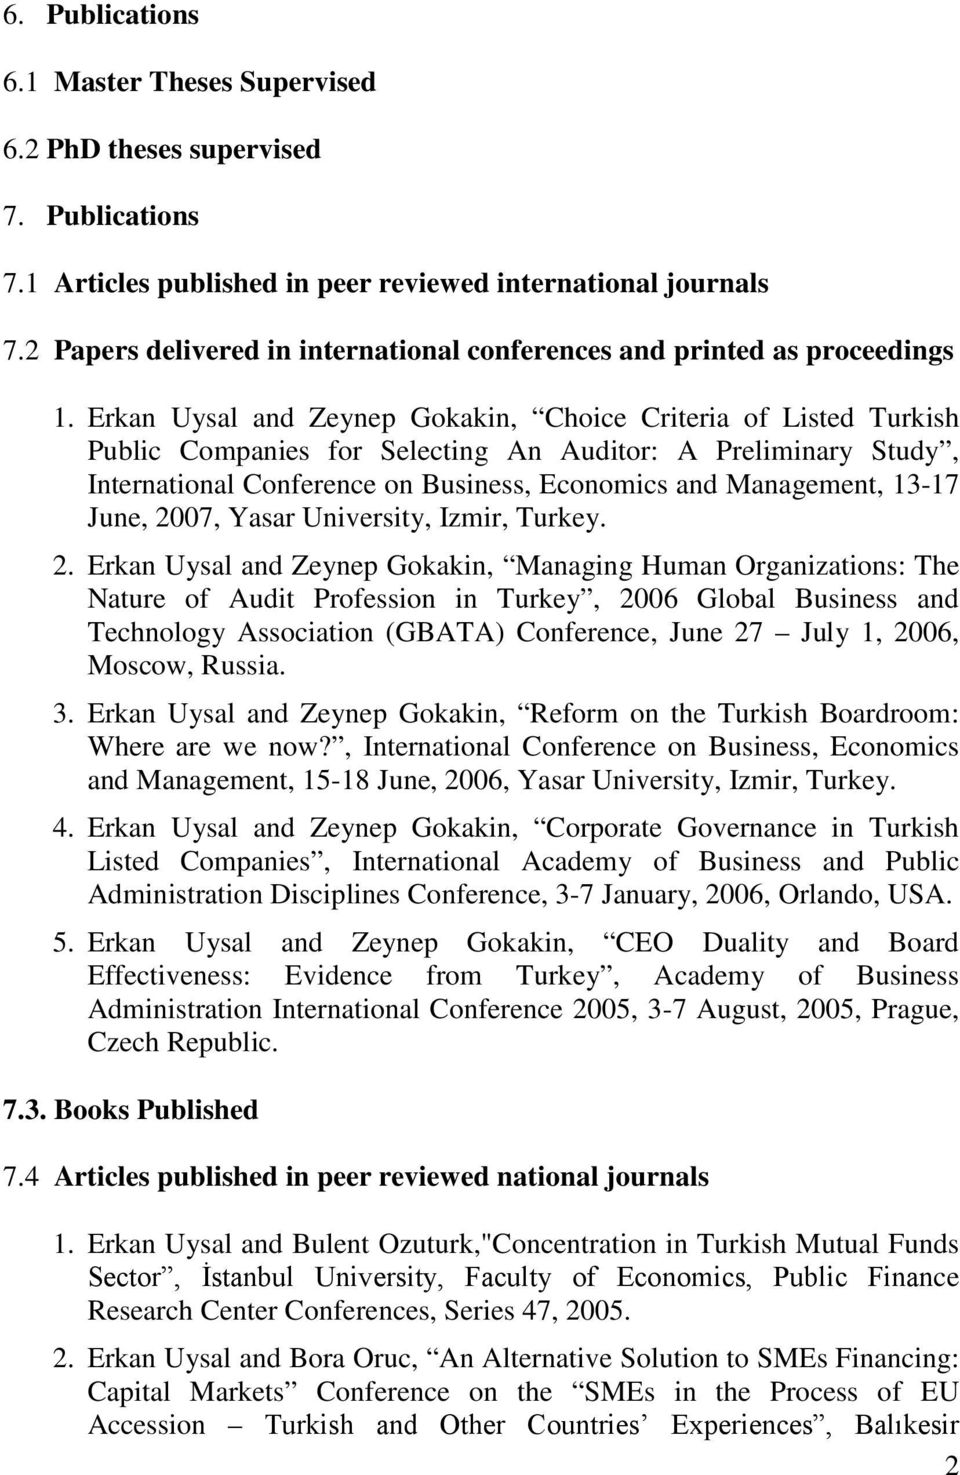 Erkan Uysal and Zeynep Gokakin, Choice Criteria of Listed Turkish Public Companies for Selecting An Auditor: A Preliminary Study, International Conference on Business, Economics and Management, 13-17